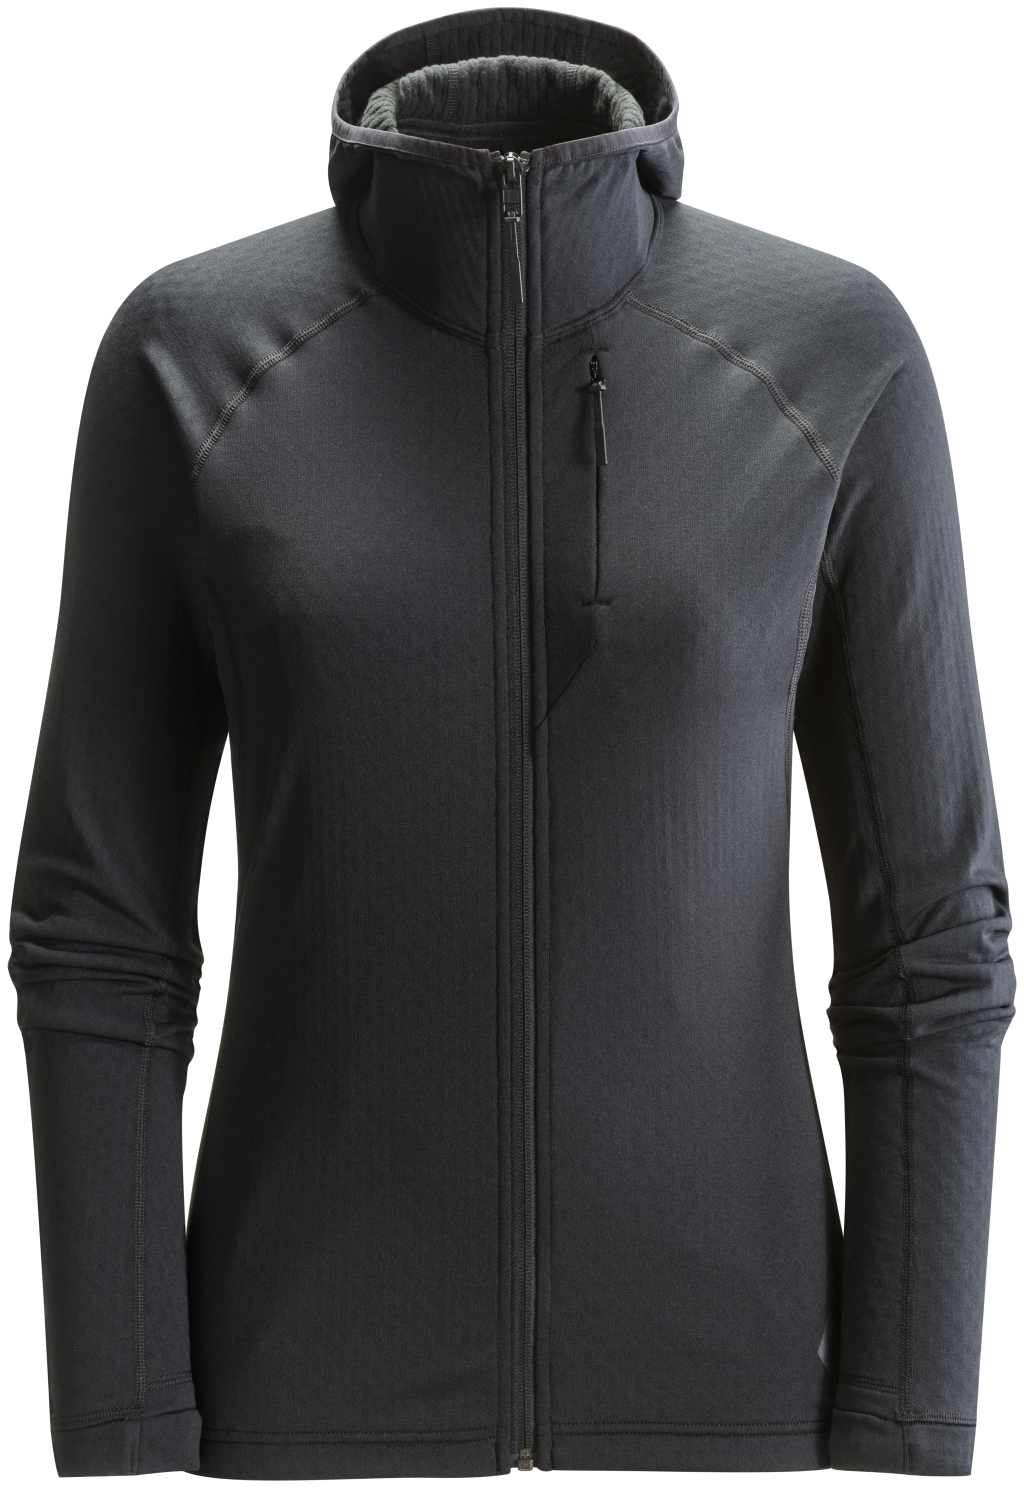 Black Diamond Coefficient Hoody Women's Black-30